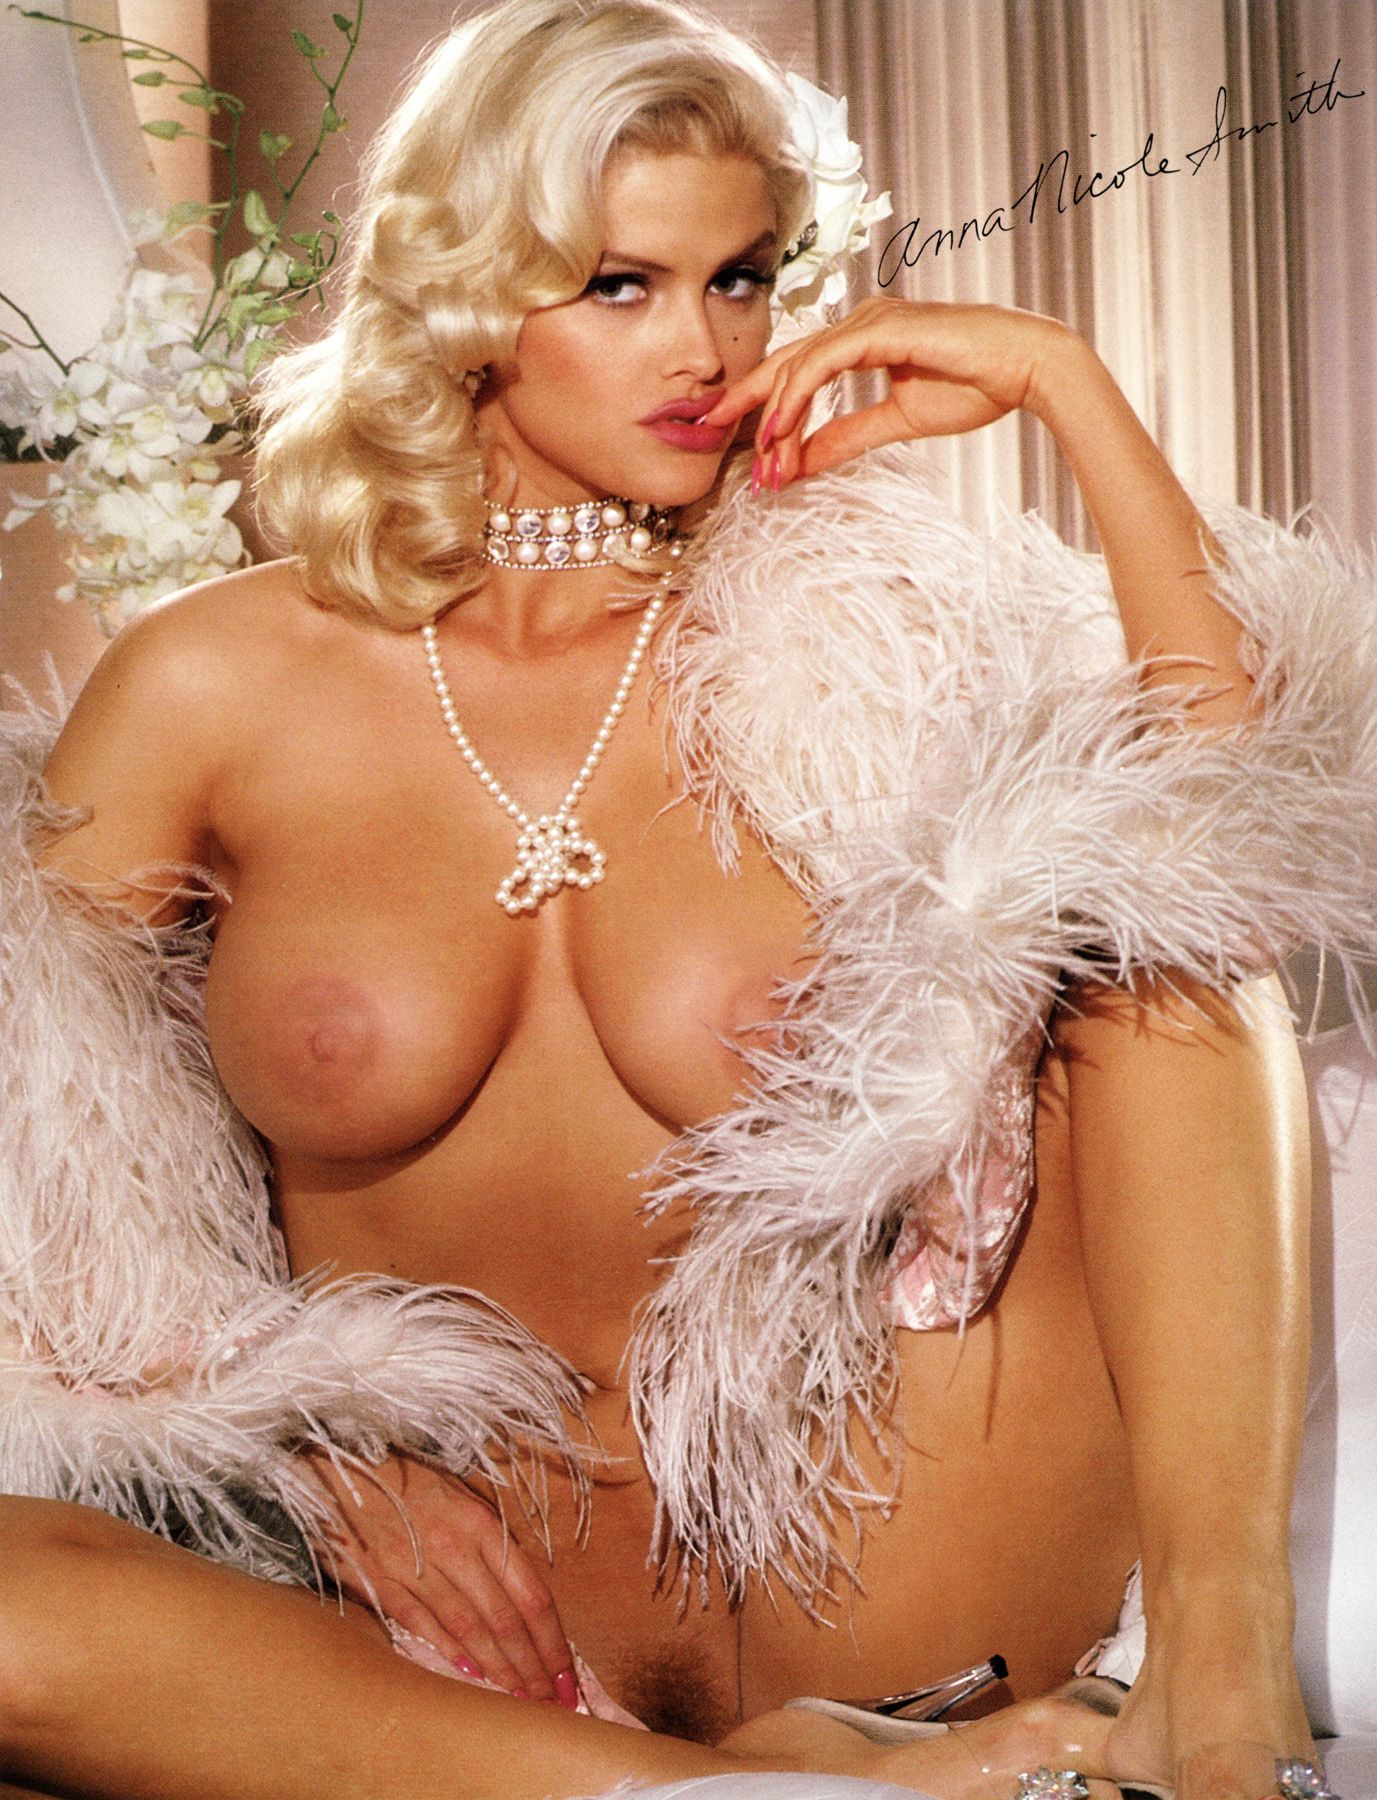 Anna nicole smith sex photos